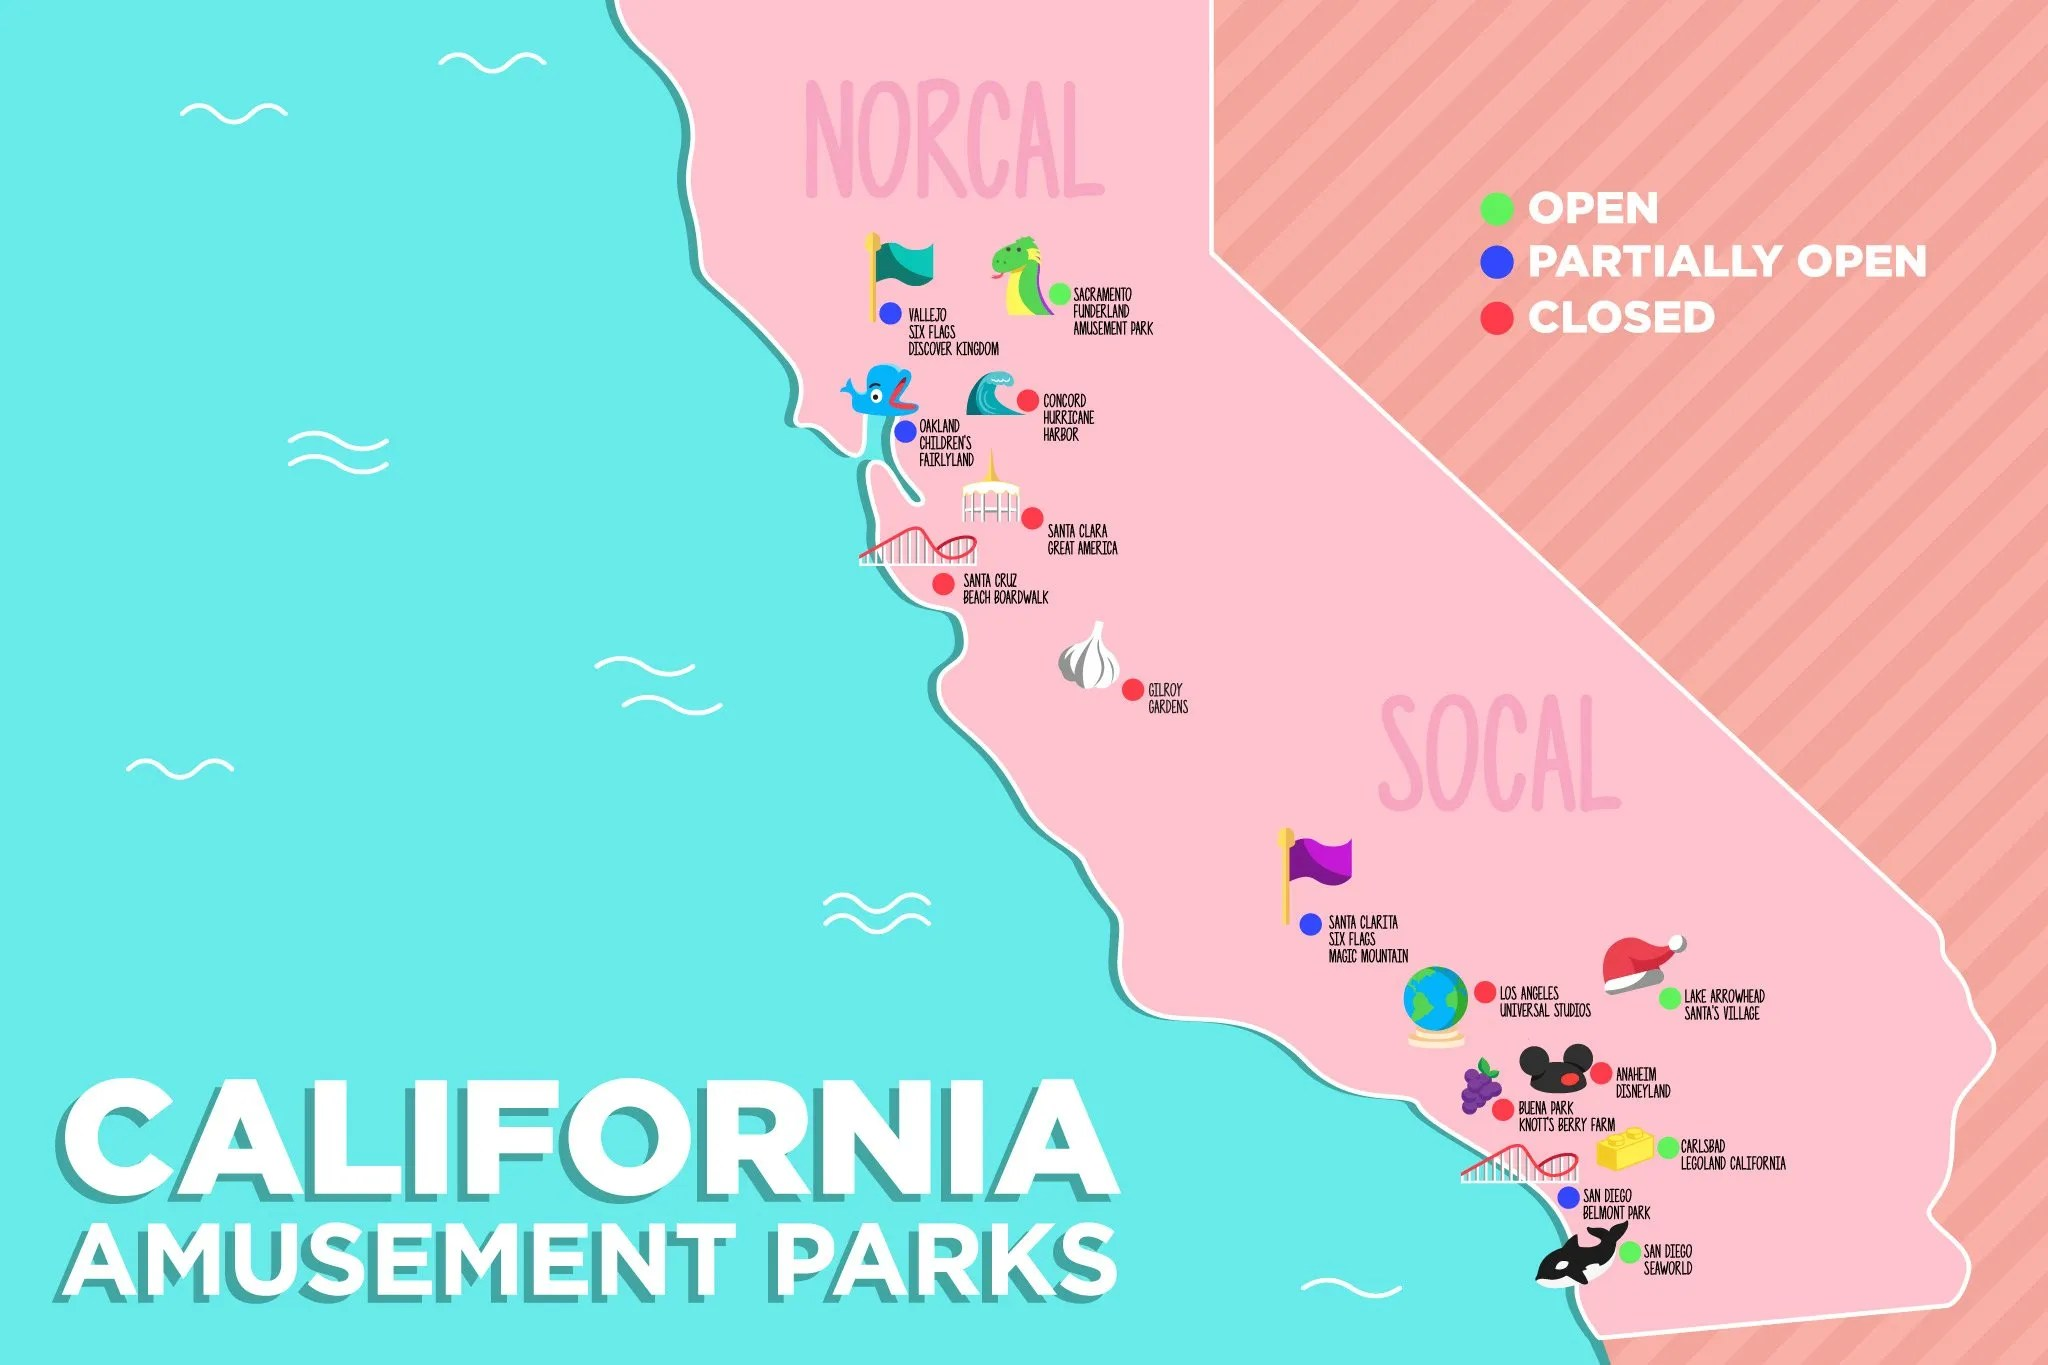 Here are the amusement parks that are still open in California